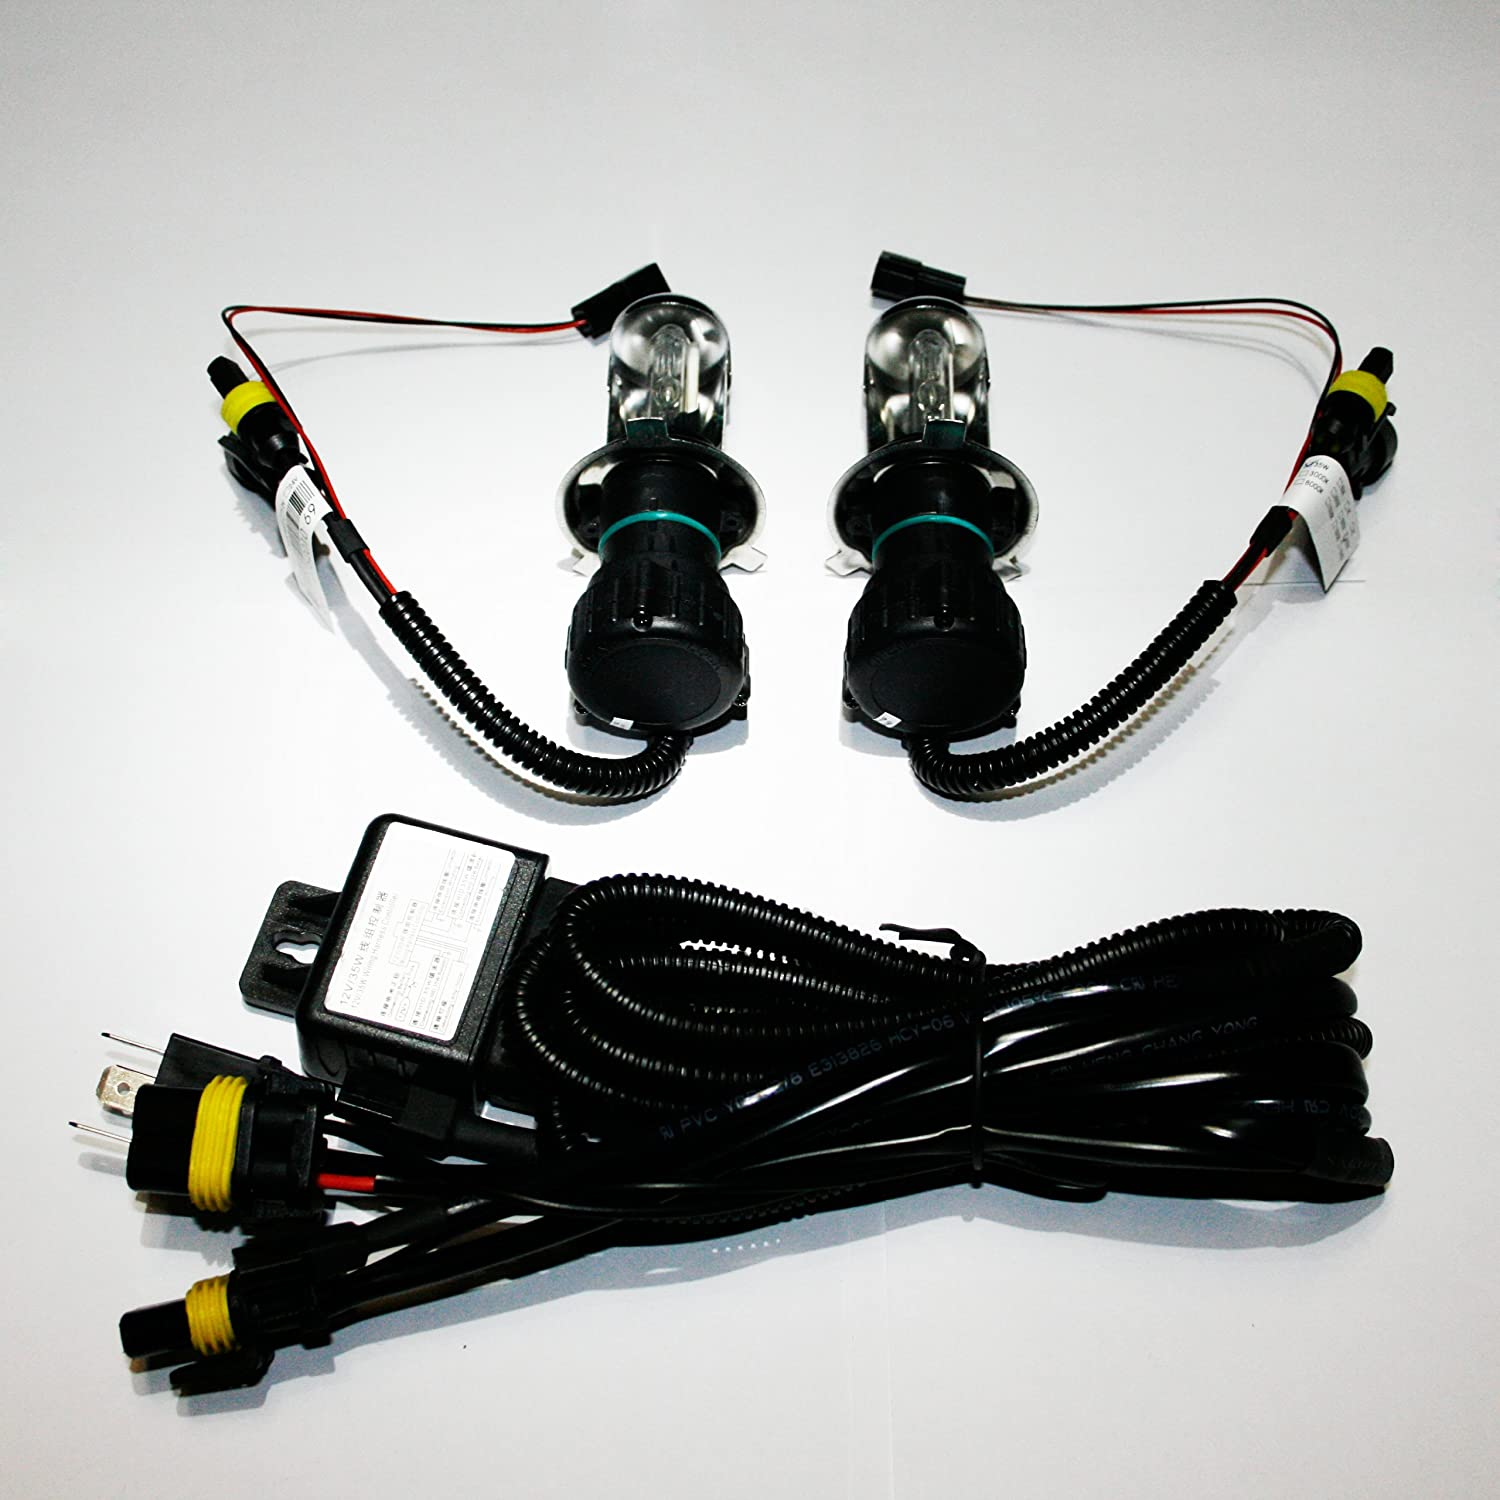 H13 9008-5000K Innovited 55W HID Xenon Bi-xenon Hi//Lo Dual Beam Replacement Bulbs With Relay Harness Controller